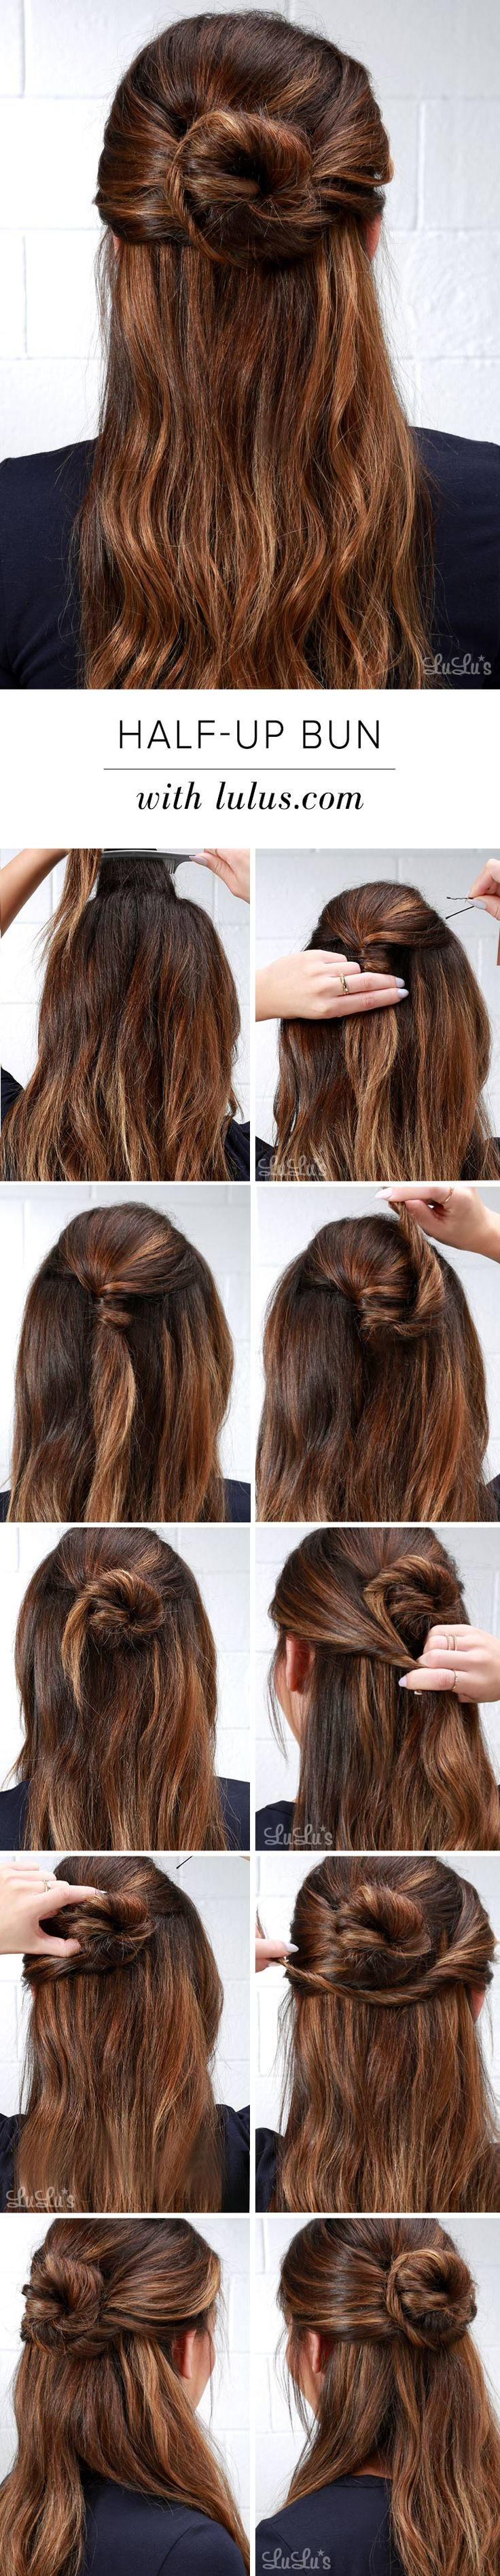 659 best Hairstyles images on Pinterest